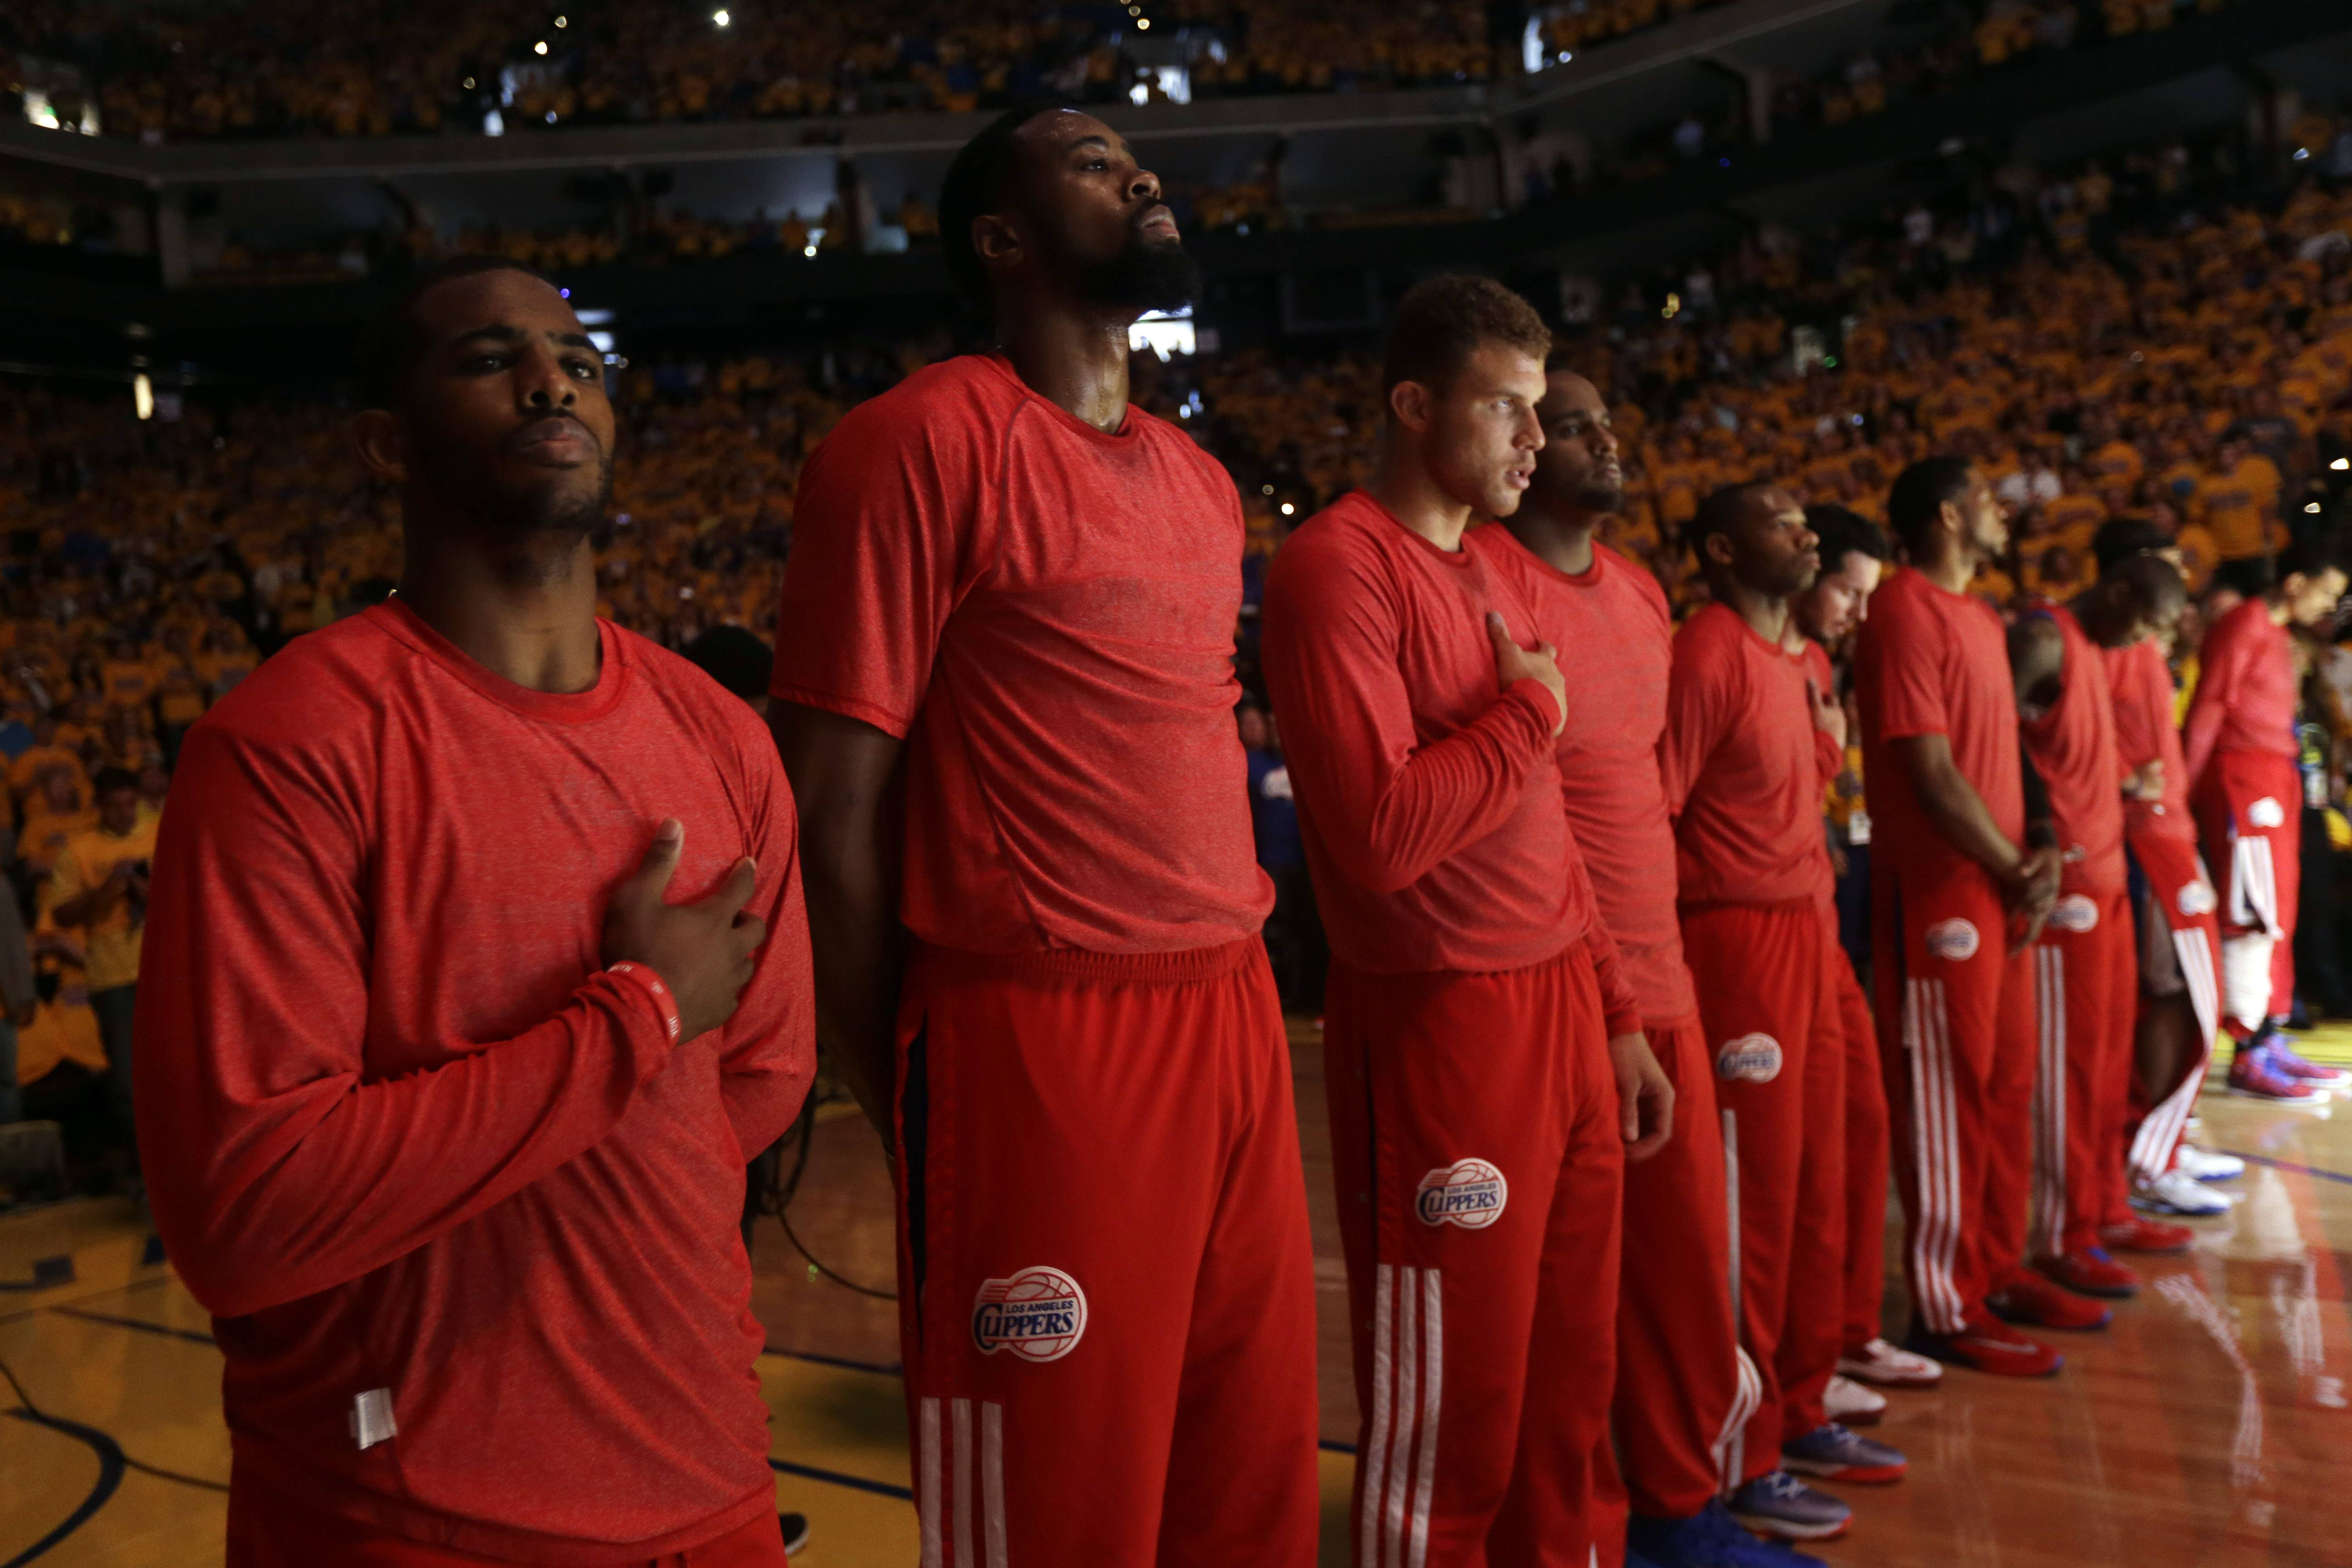 Members of the Los Angeles Clippers listen to the national anthem before Game 4 of an opening-round NBA basketball playoff series against the Golden State Warriors on Sunday, April 27, 2014, in Oakland, Calif. The Clippers chose not to speak publicly about owner Donald Sterling. Instead, they made a silent protest. The players wore their red Clippers' shirts inside out to hide the team's logo.